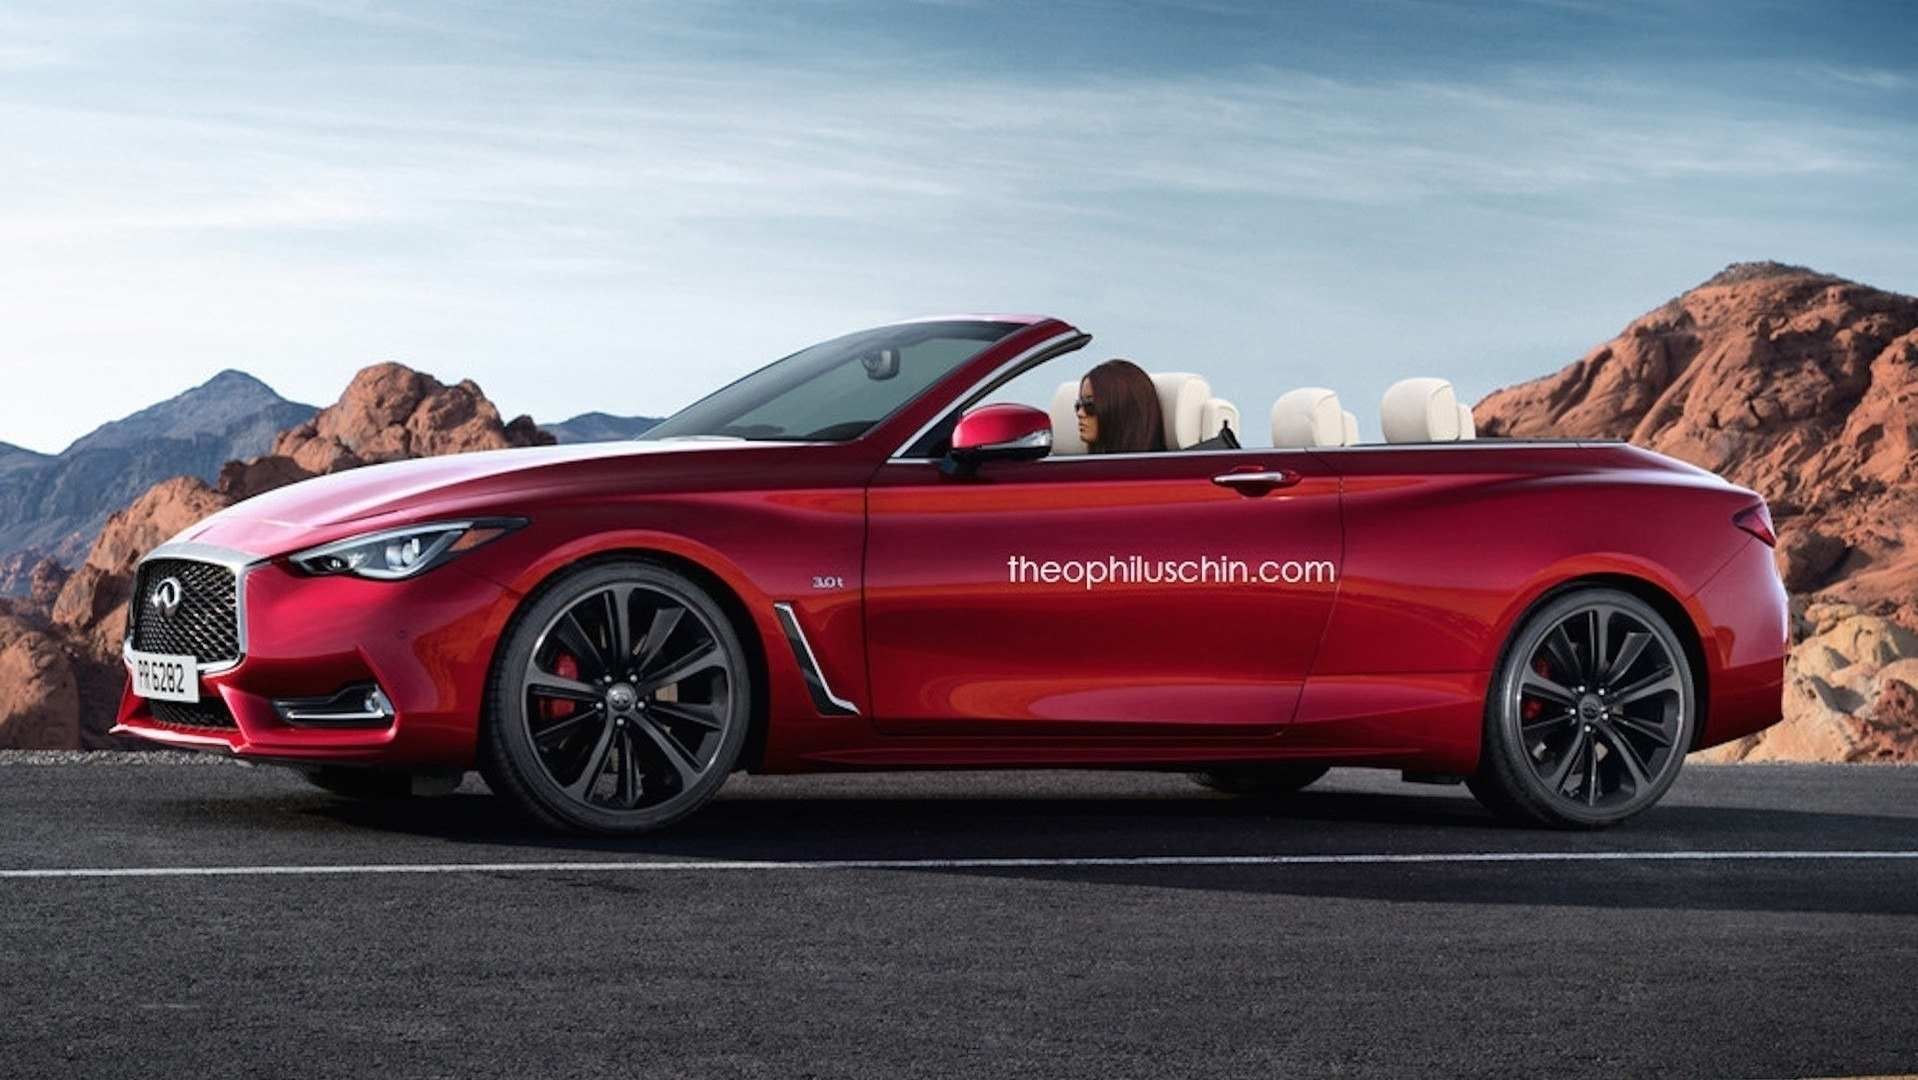 32 All New 2019 Infiniti Q60 Coupe Convertible Price